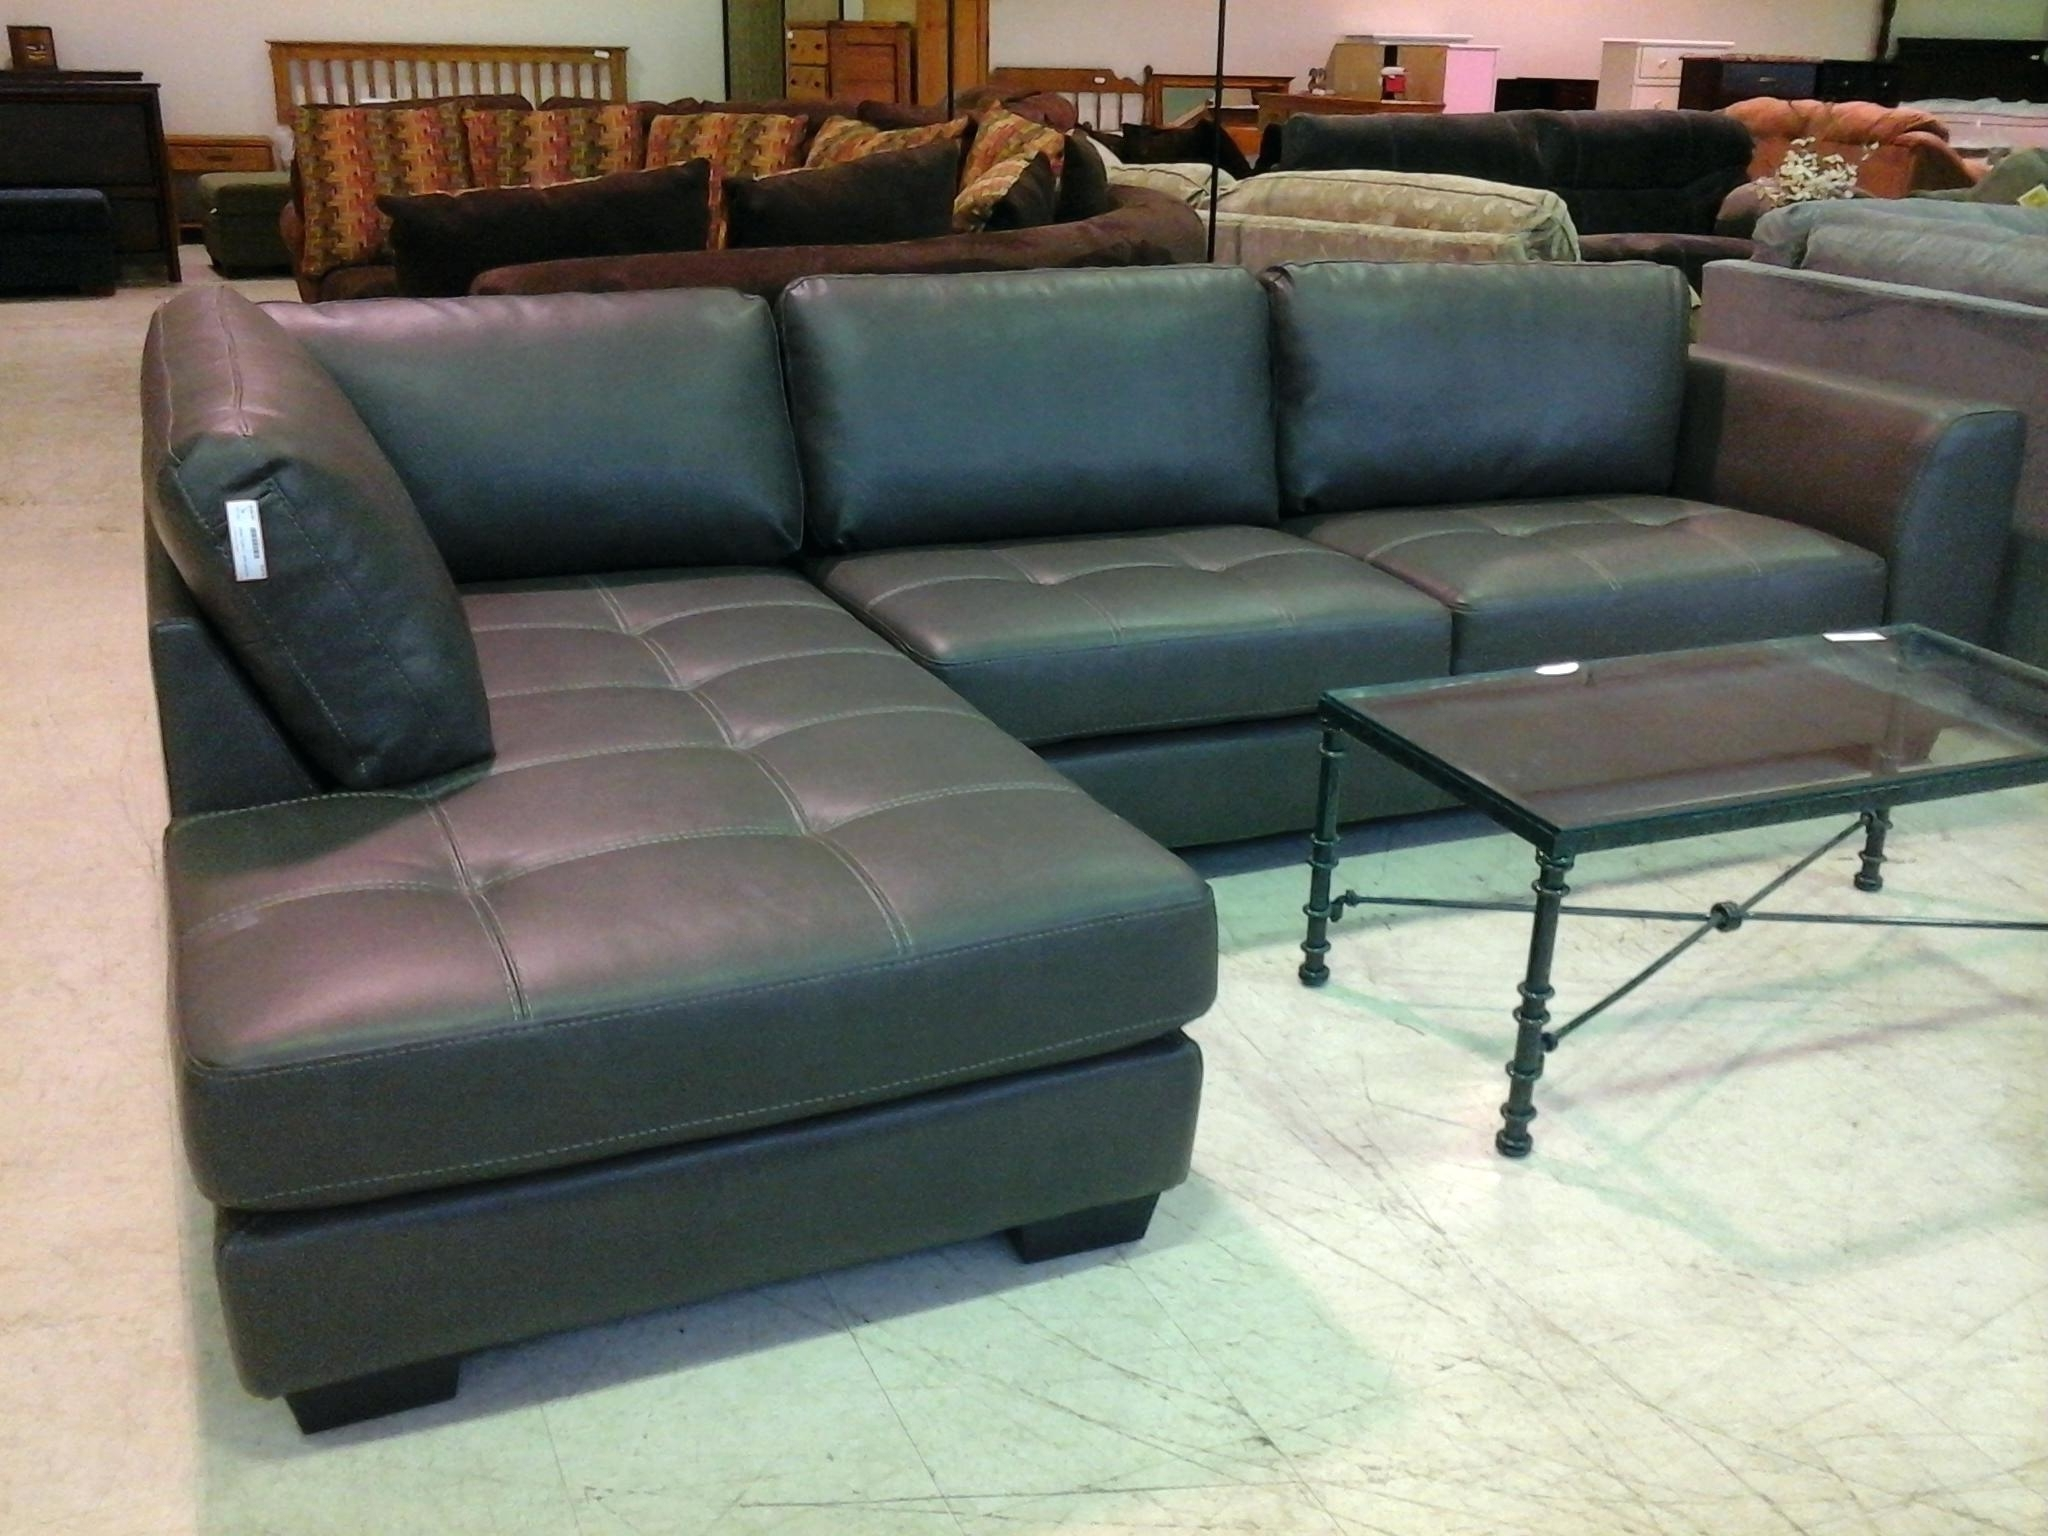 Fashionable Quebec Sectional Sofas Regarding Grey Sectional Sofa Canada Okaycreations Net Light Gray Fabric (View 6 of 15)